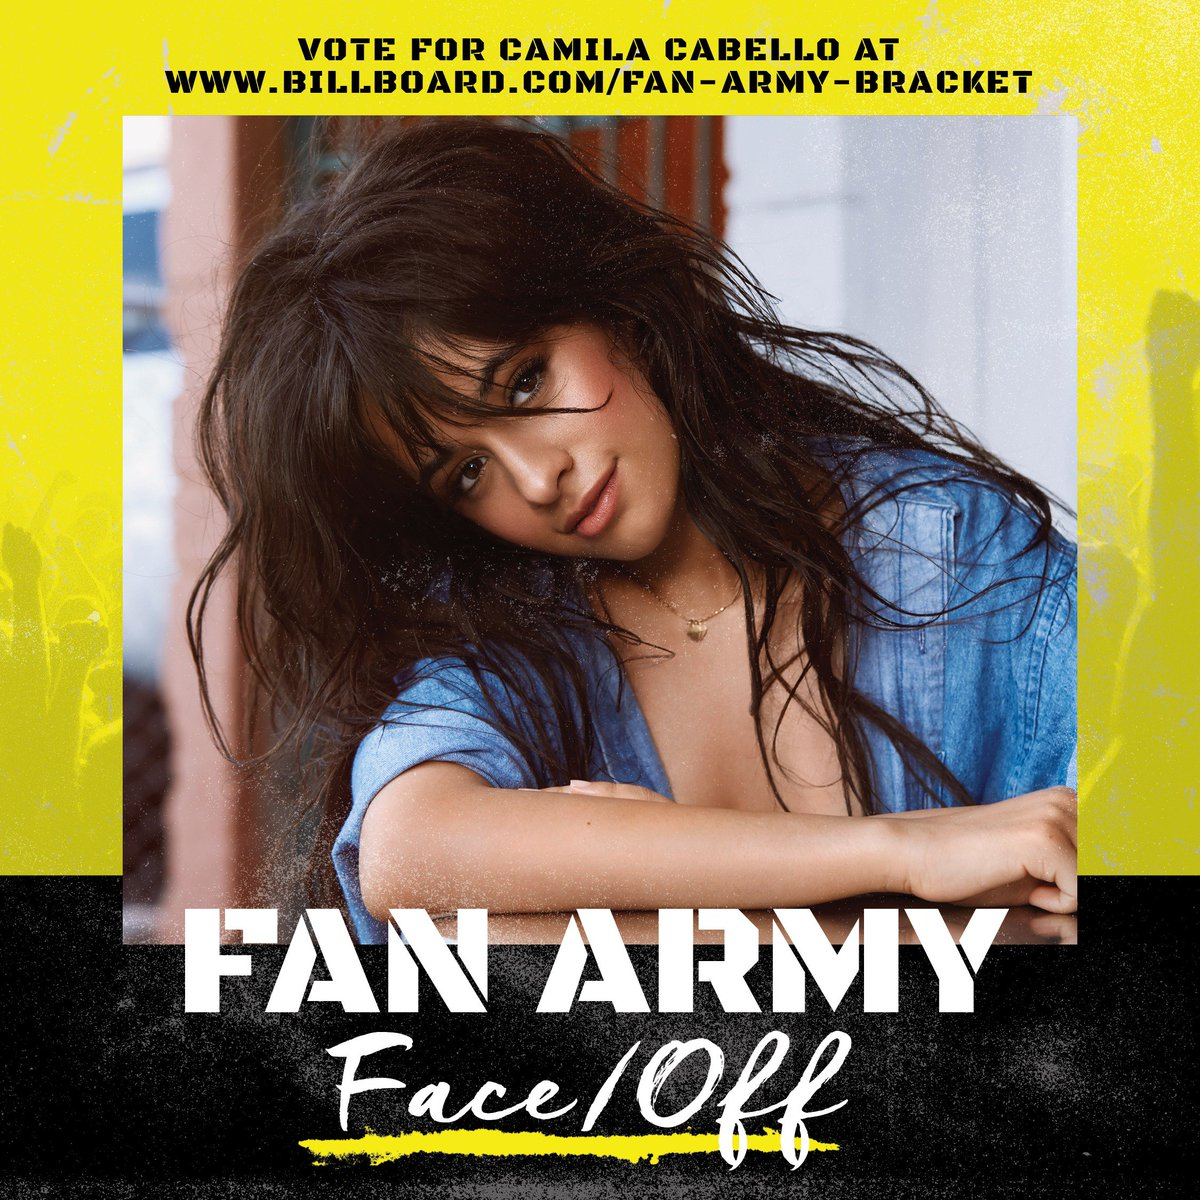 It's the #Camilizers vs #LittleSailors! Vote in the #FanArmyFaceOff here: https://t.co/FRh46LTgPX